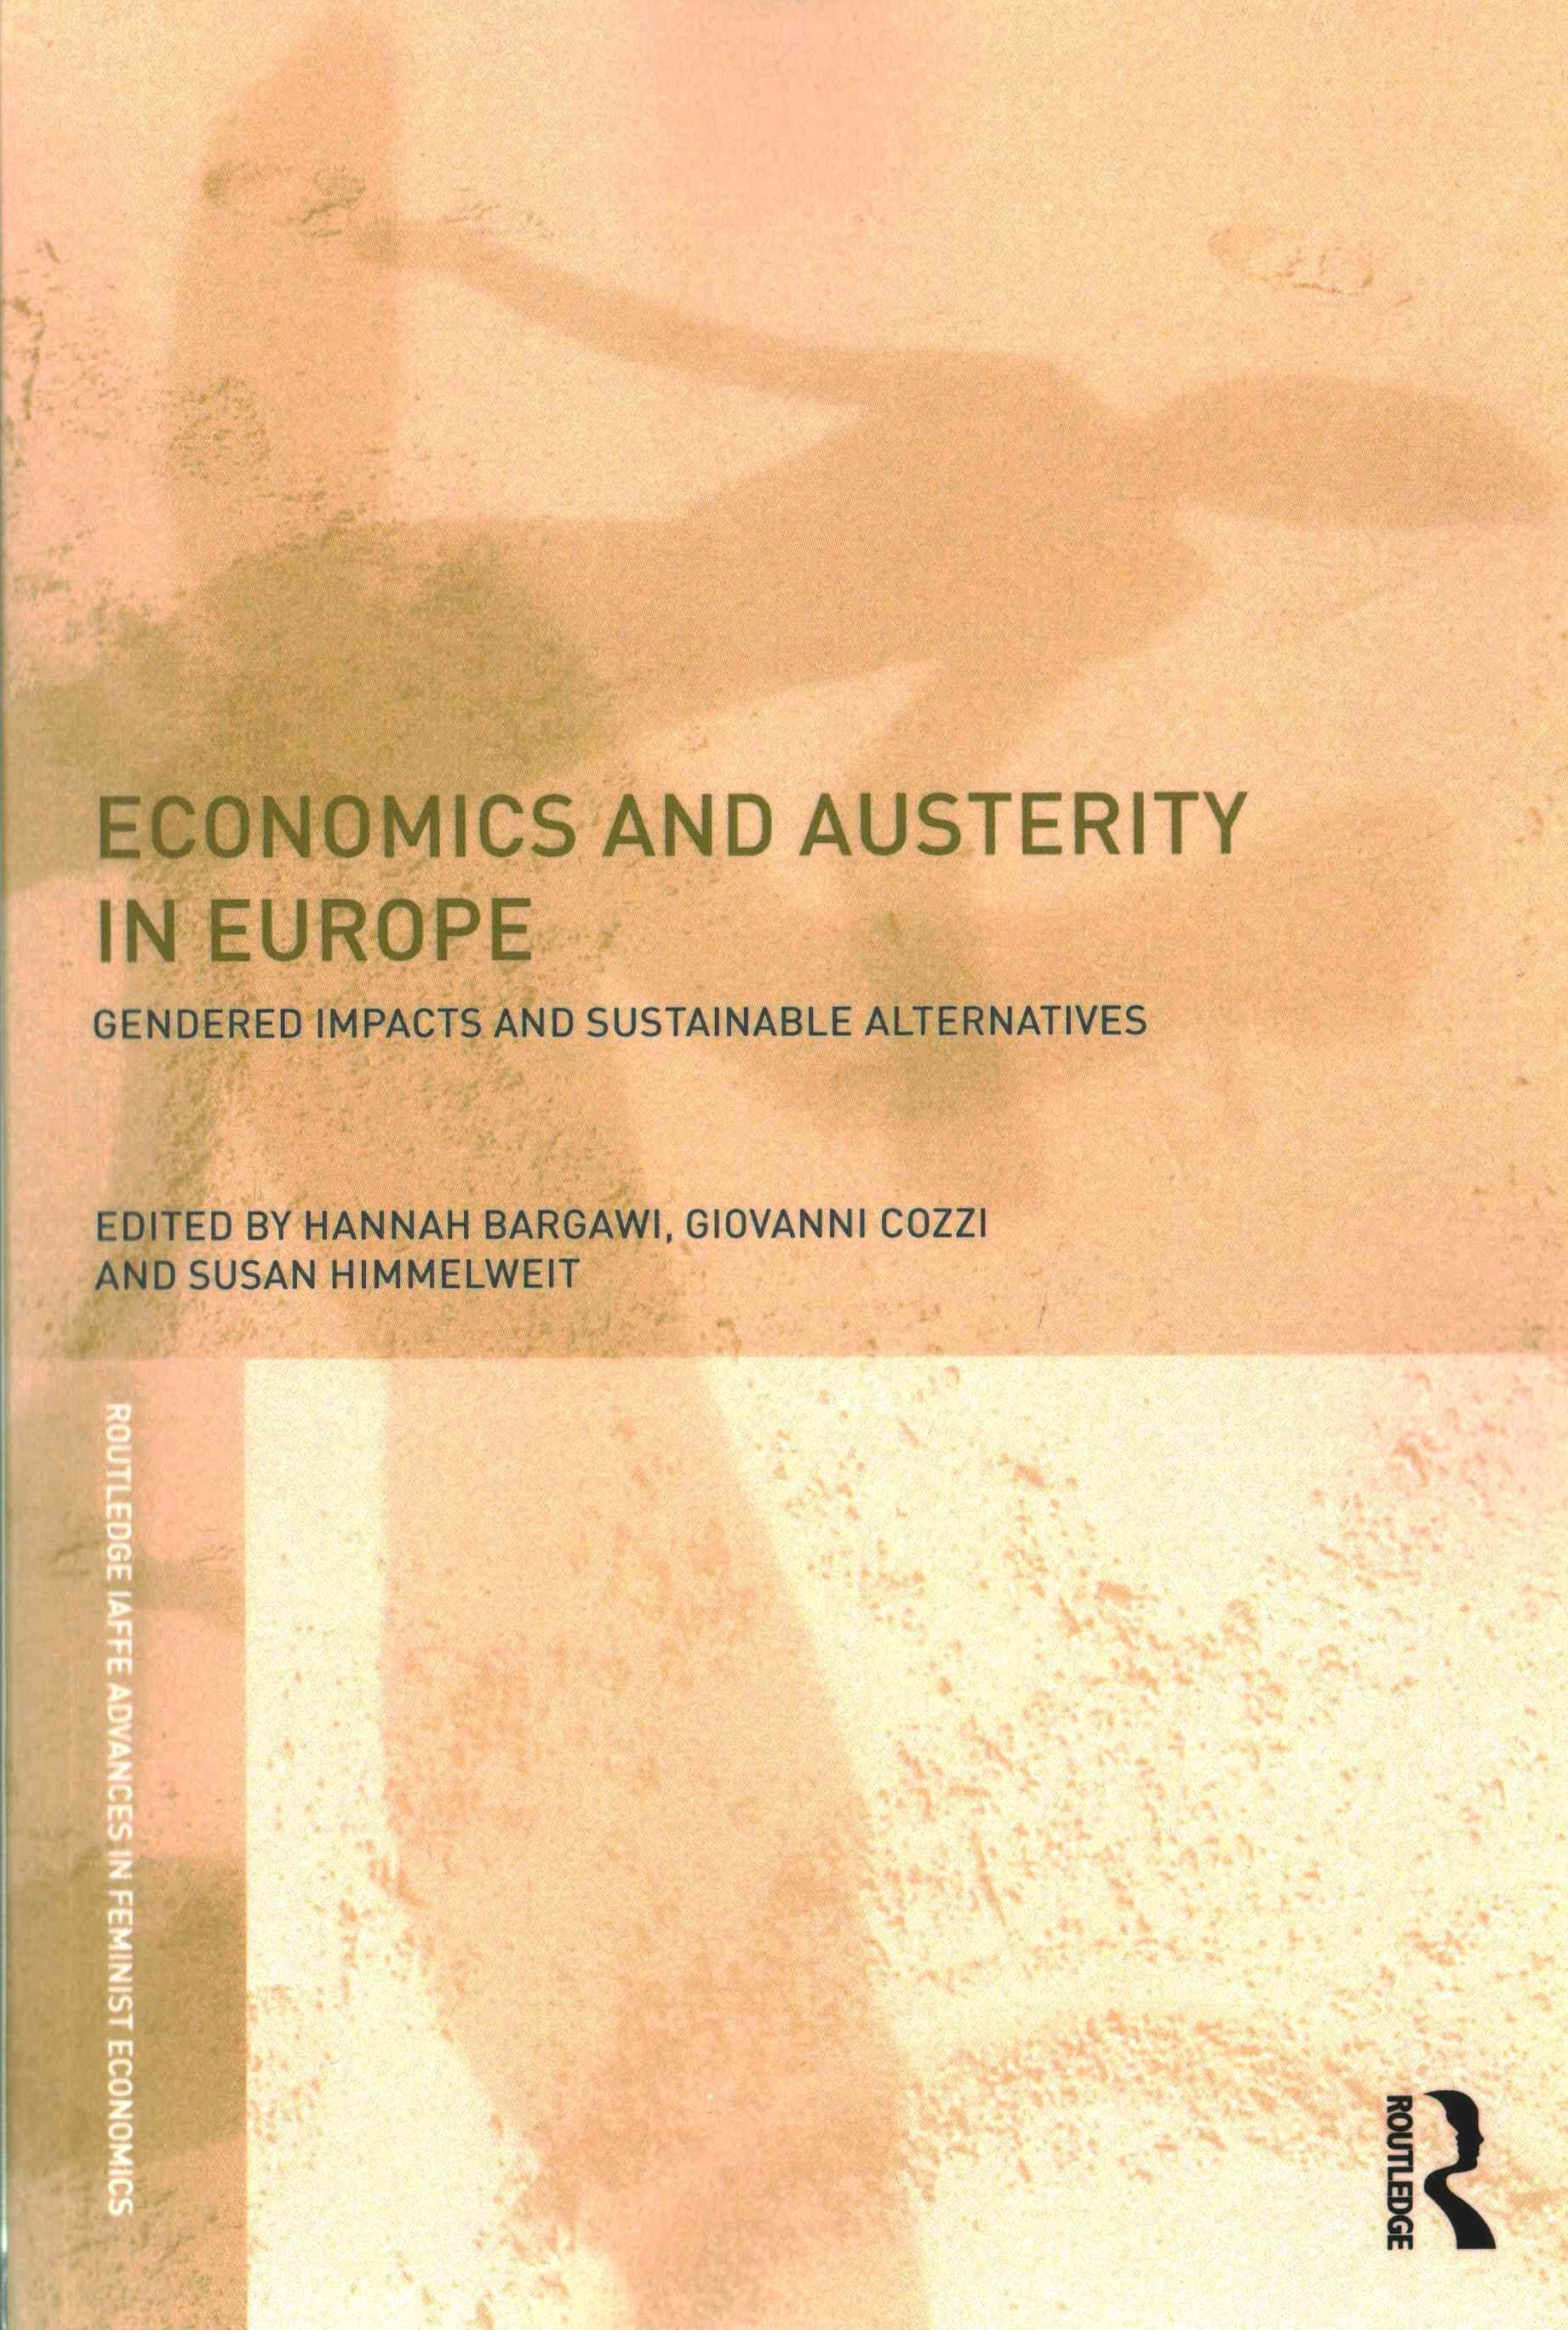 Economics and Austerity in Europe